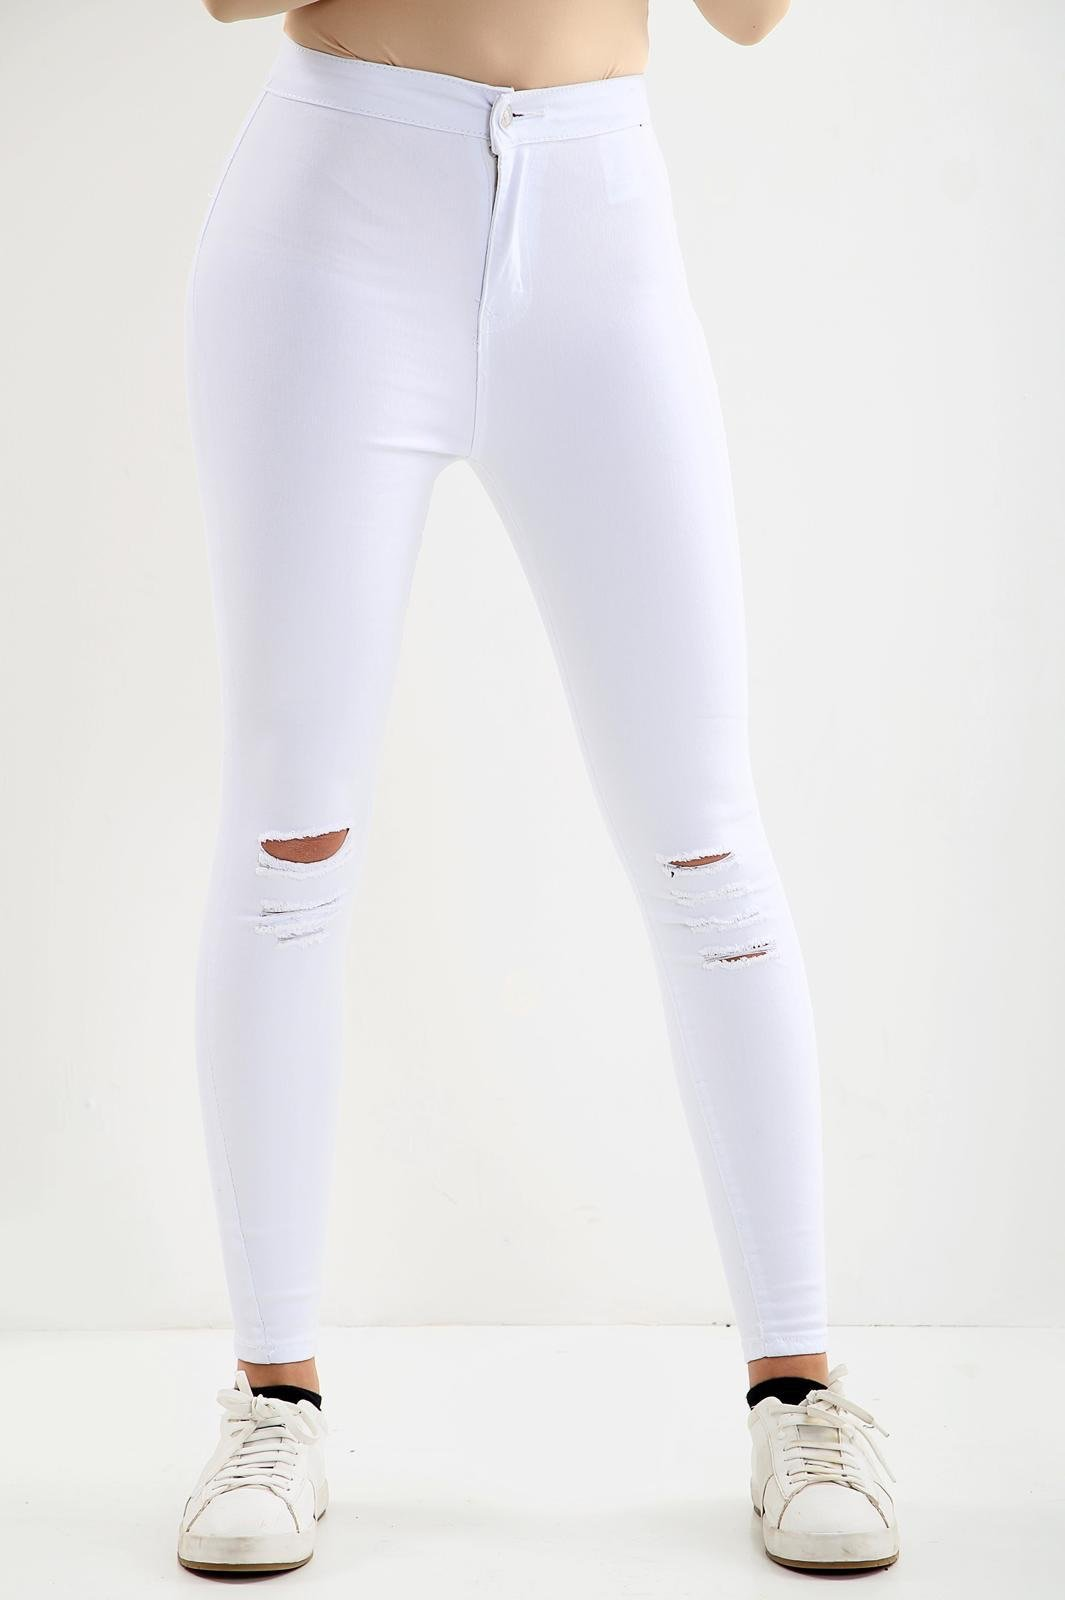 White Knee Cut Ladies High waisted jeans